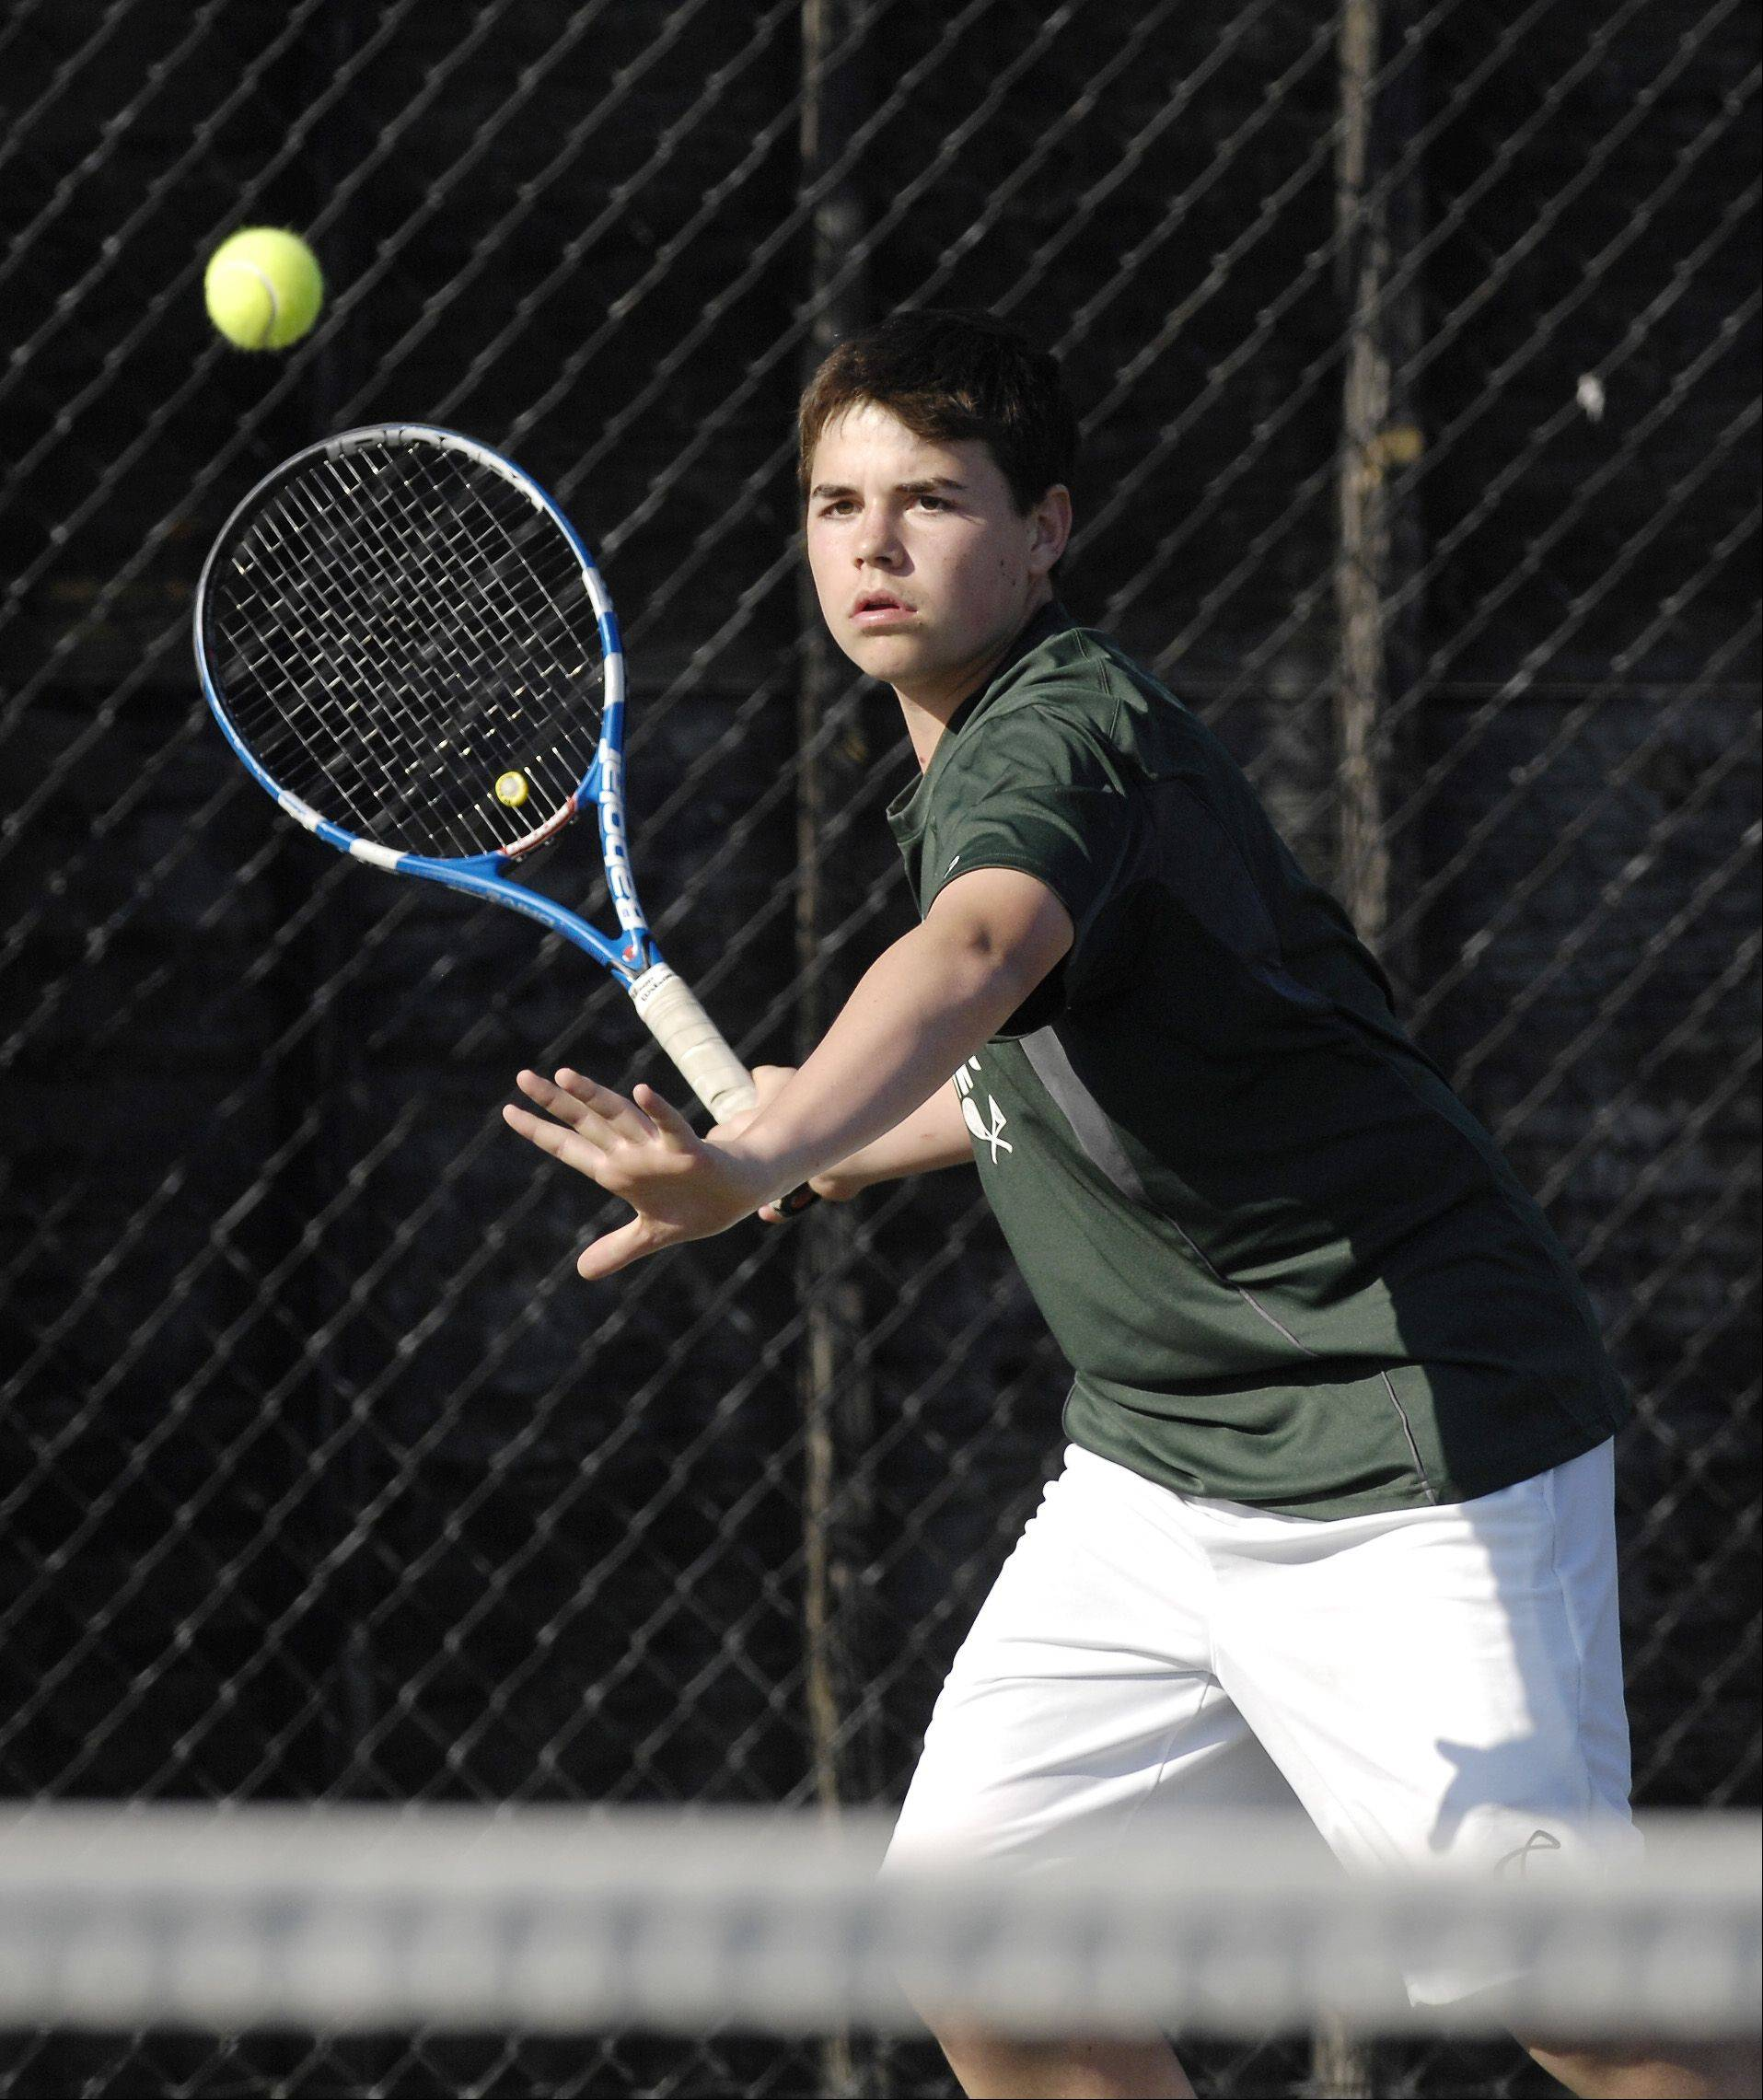 Nate Dell of Glenbard West plays against Terrance Chen of Naperville North during a boys varsity tennis match at West, Thursday.